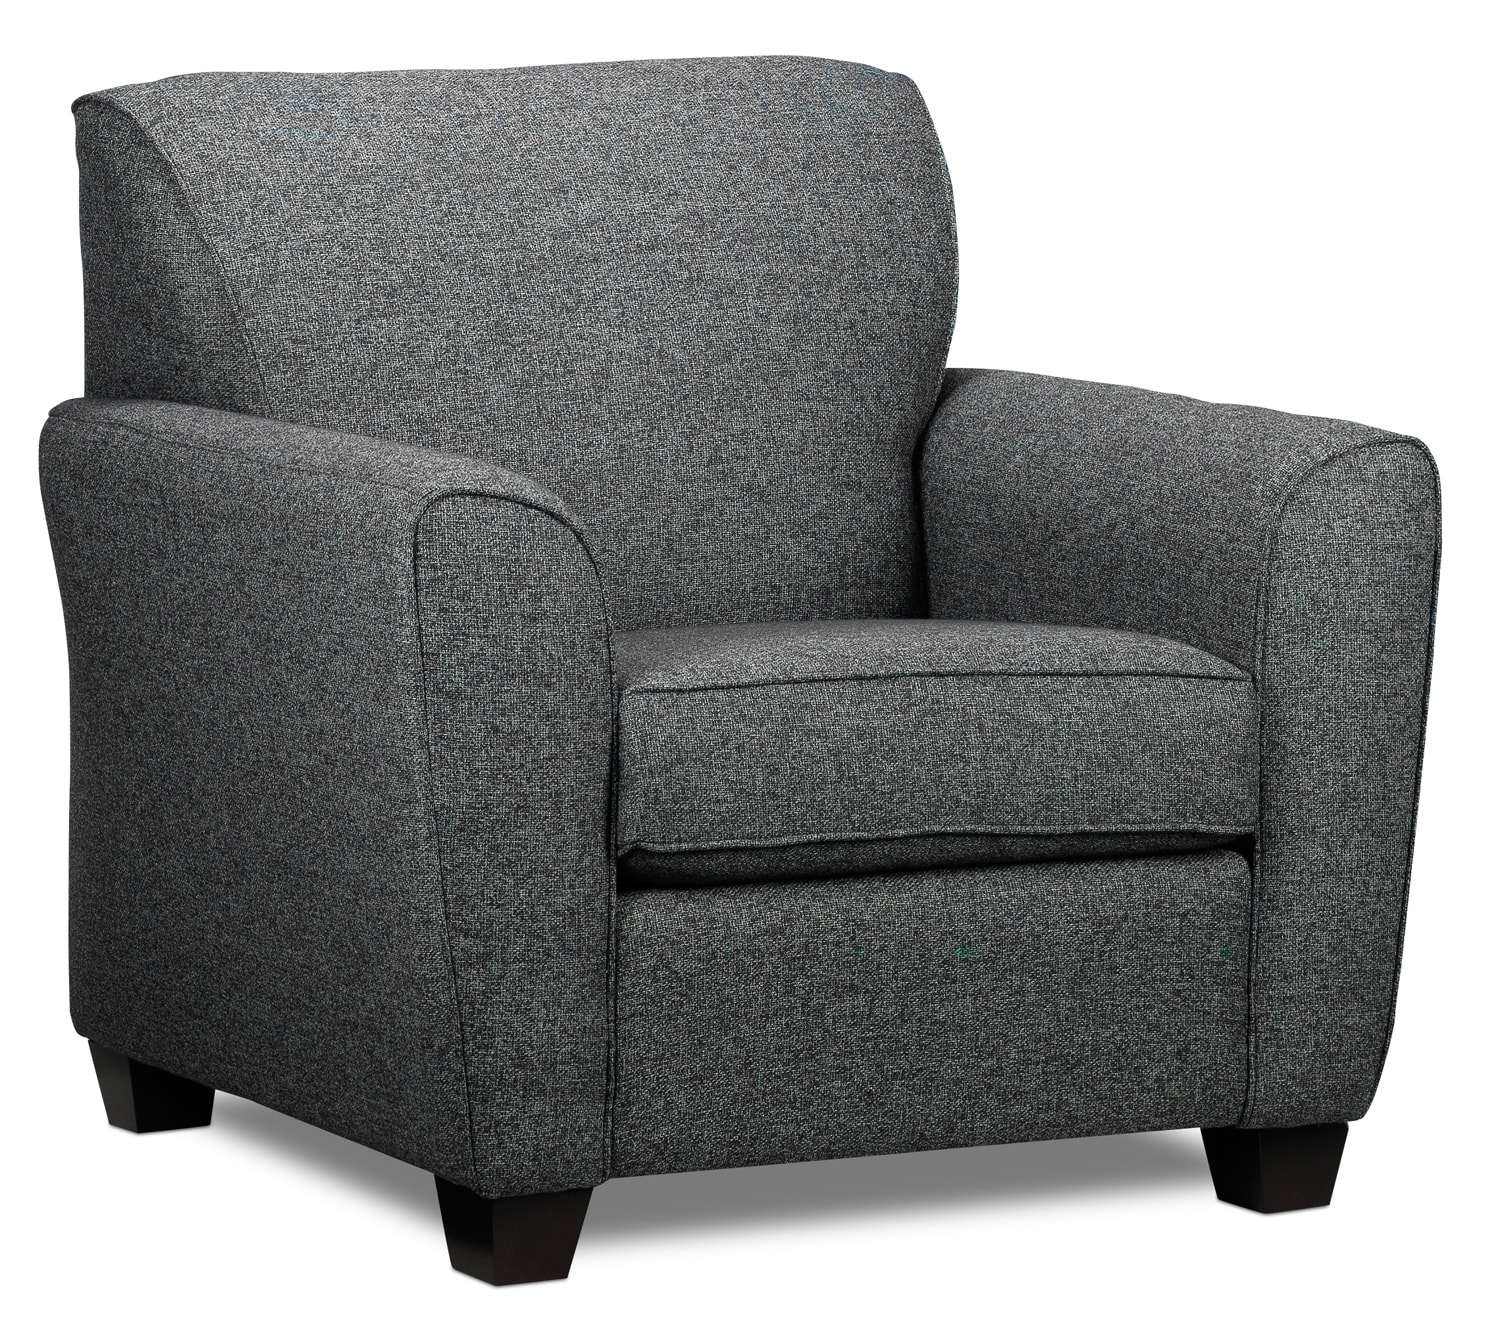 Living Room Furniture - Ashby Chair - Grey